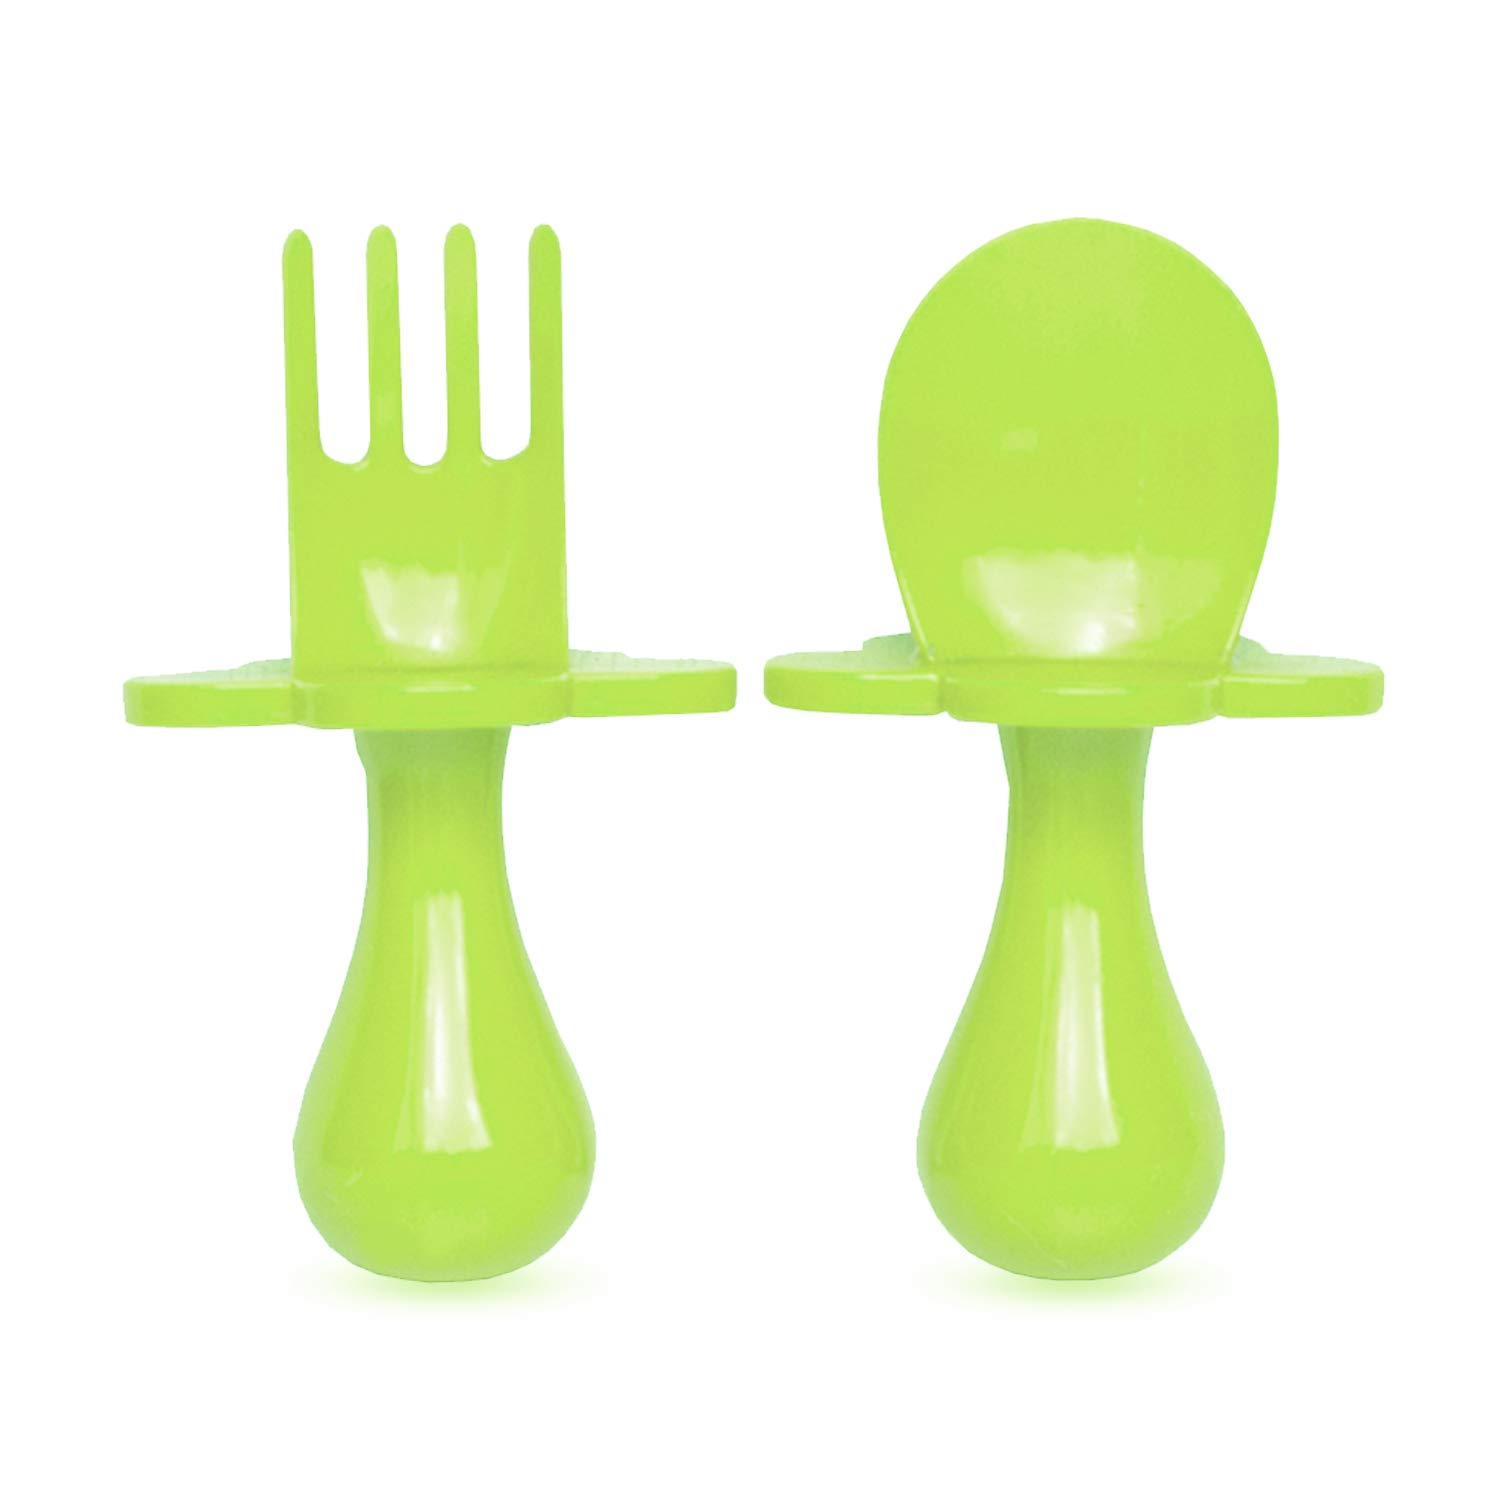 Grabease First Self Feeding Utensil Set Of Spoon And Fork. Mint